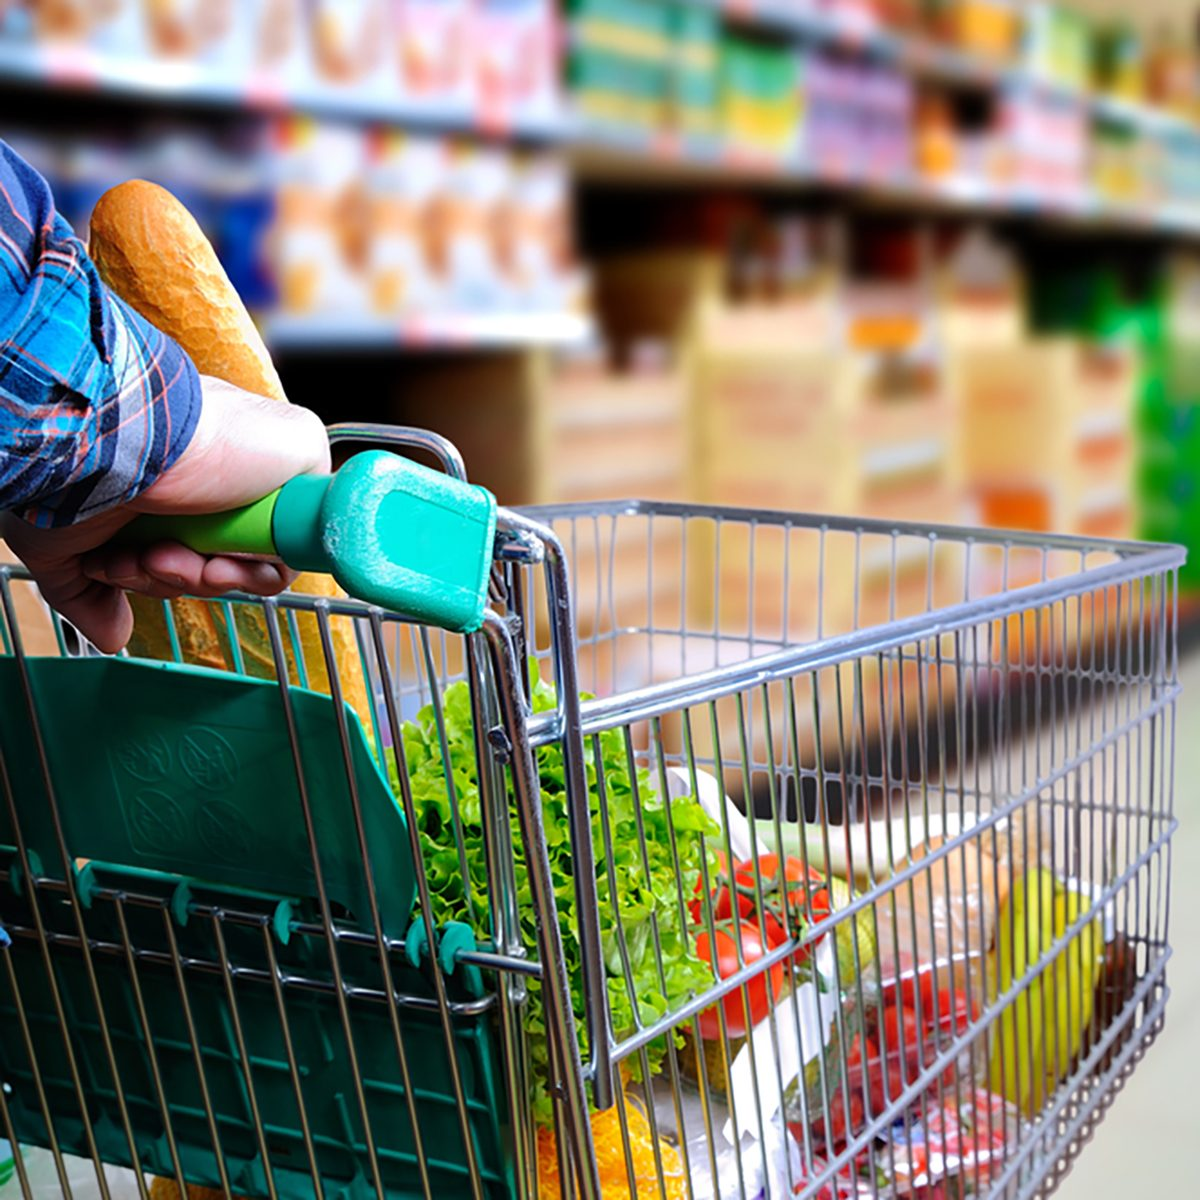 Man pushing shopping cart full of food in the supermarket aisle.